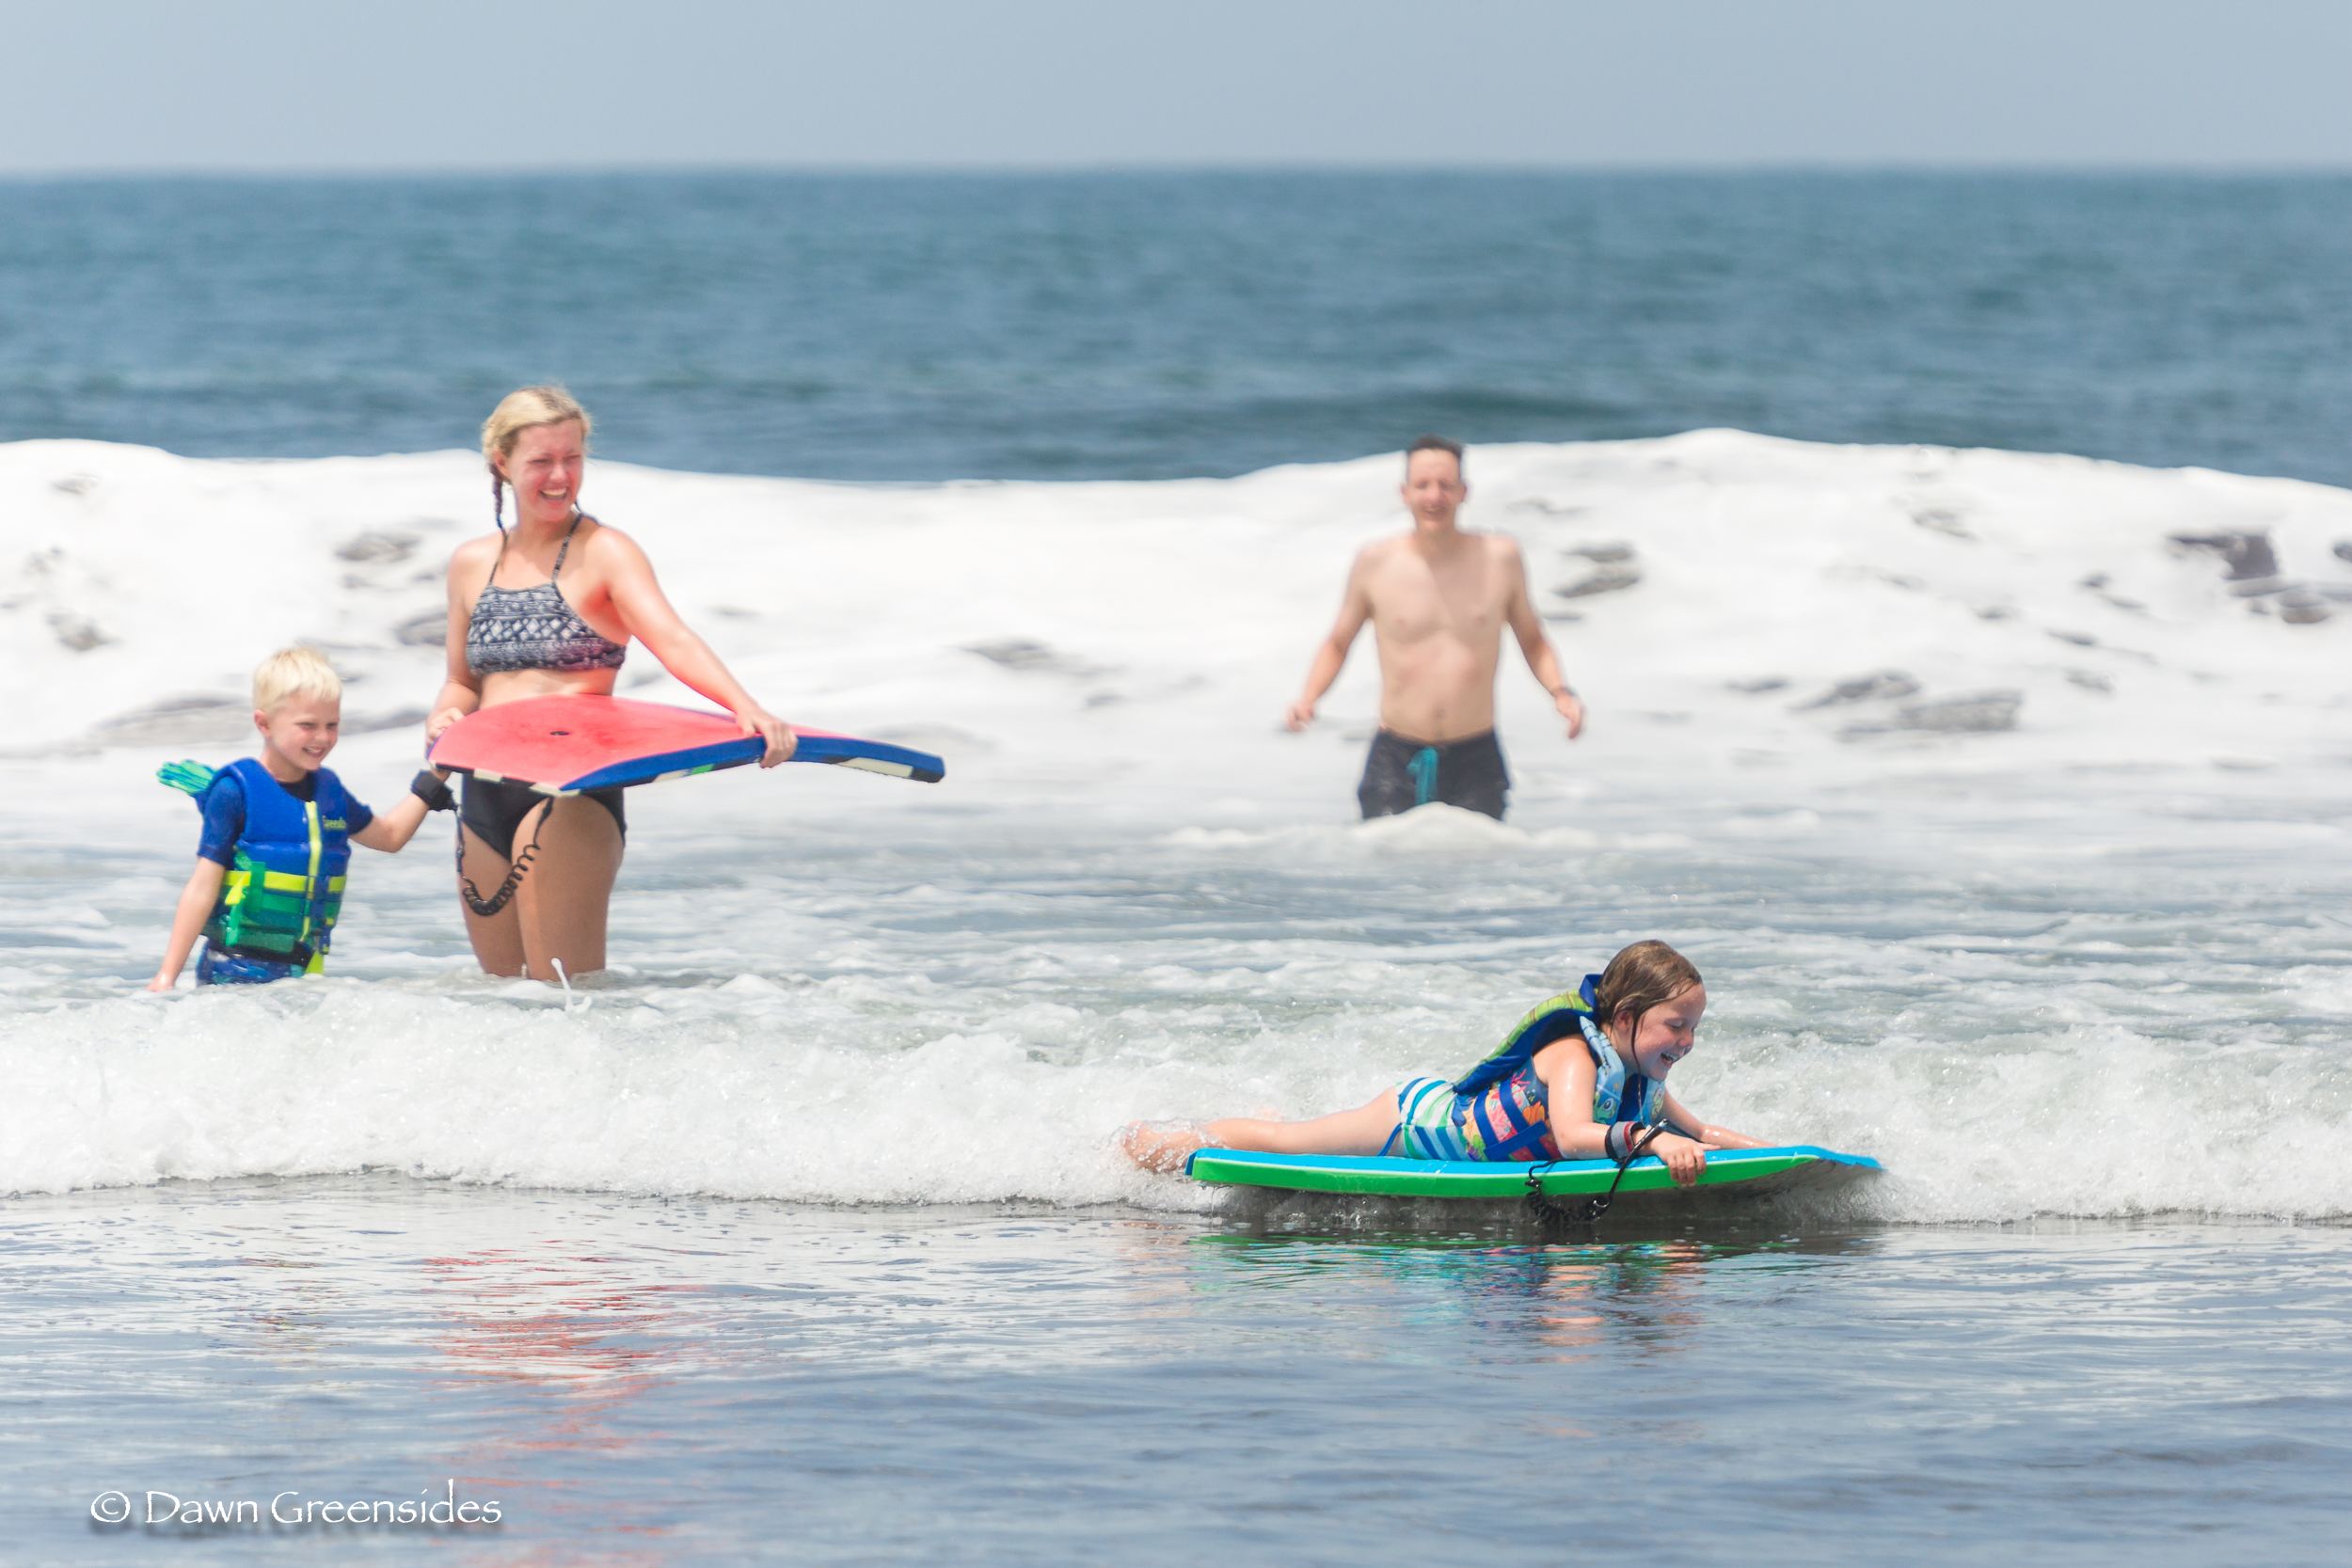 Last summer we were thrilled to go  visit the Bensons  in El Salvador. Such a fun time at the beach!